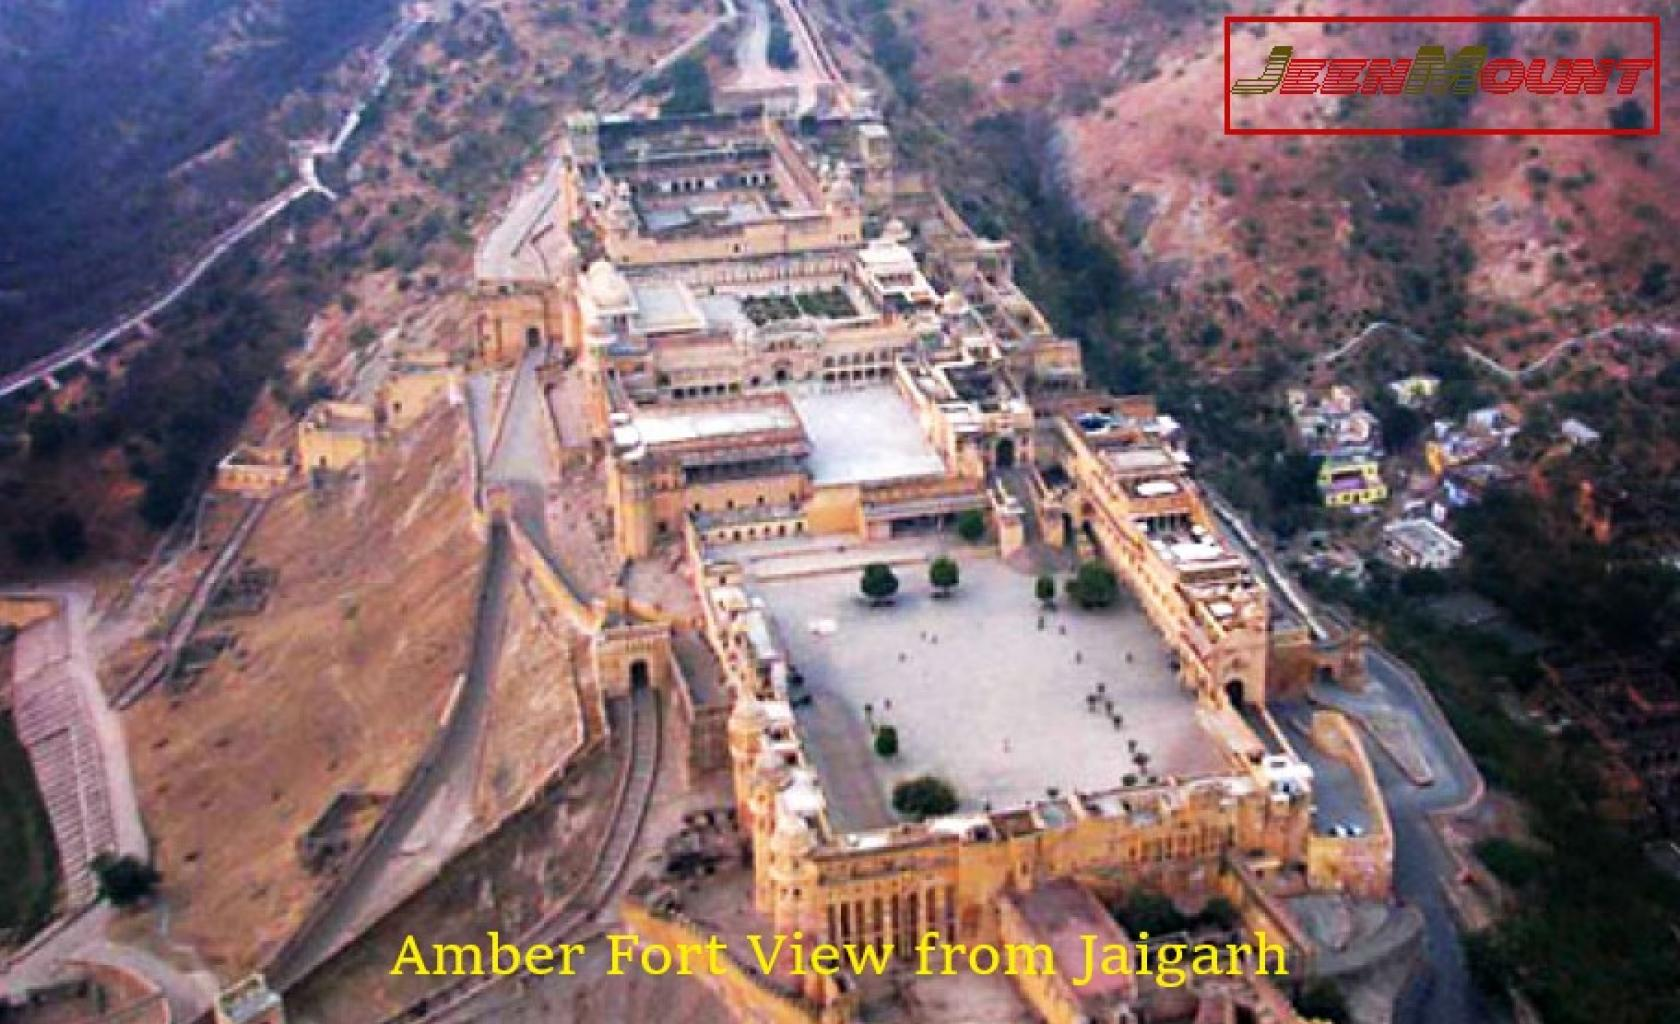 Amber Fort from Jaigarh